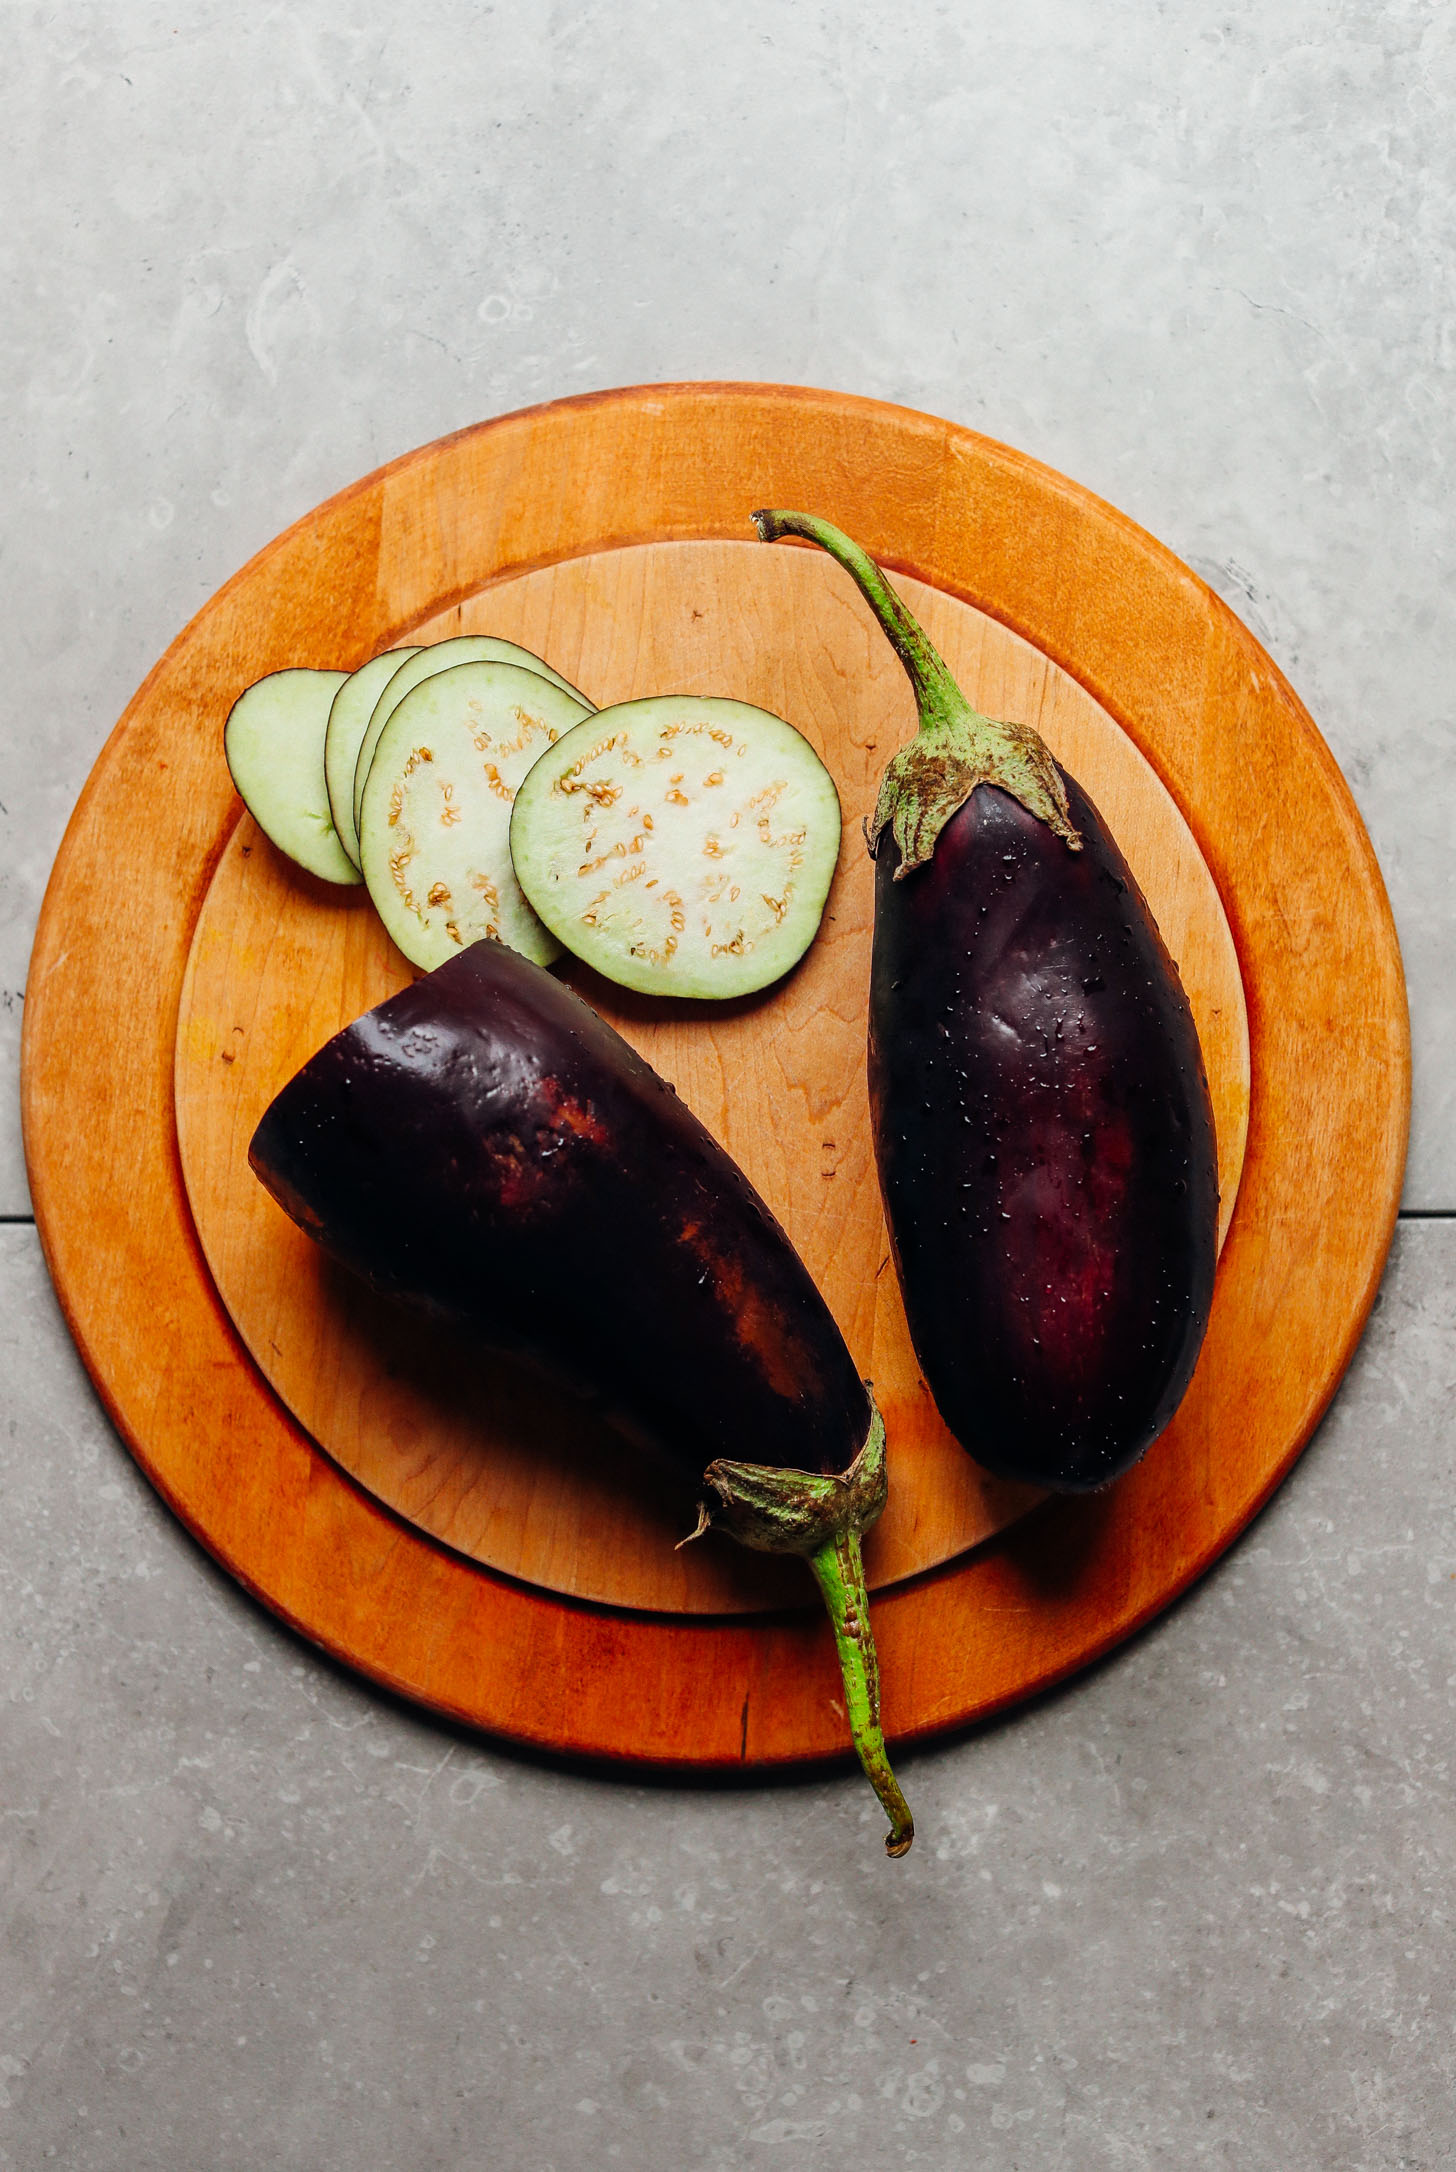 Whole and sliced eggplant on a wood cutting board